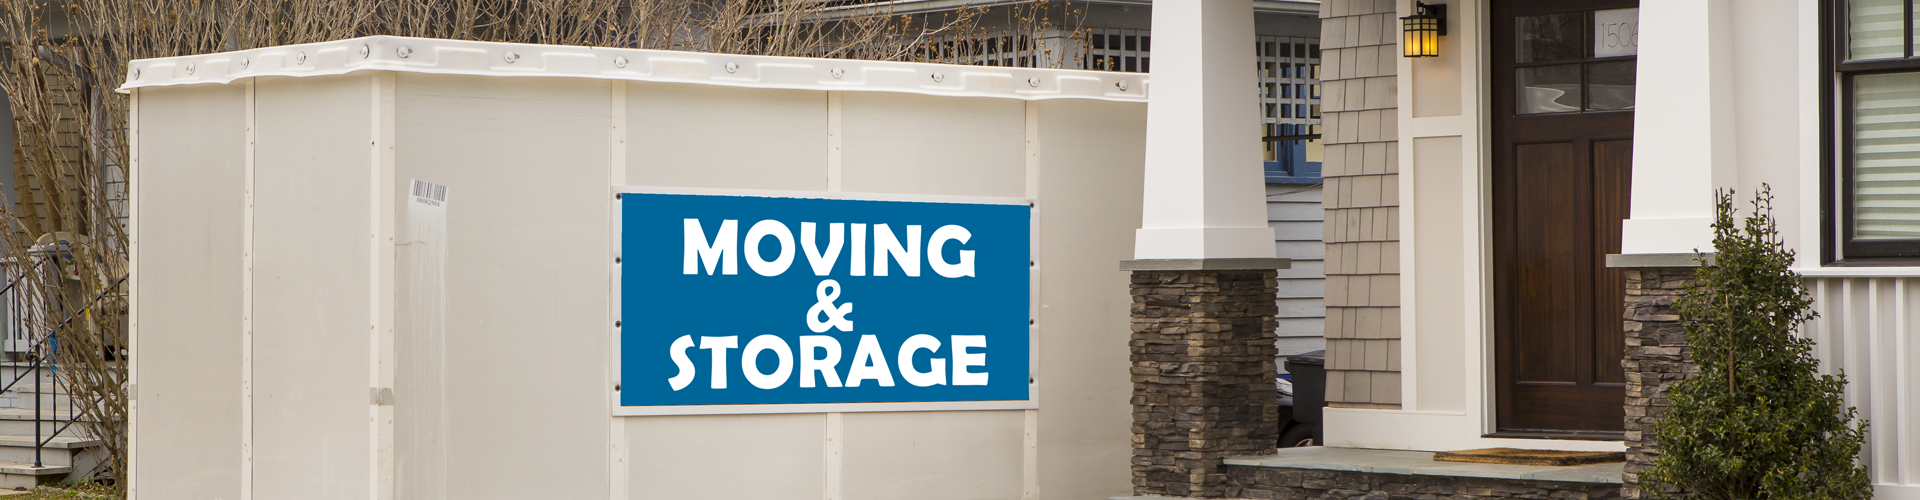 Storage for moving - storage units vs. moving containers